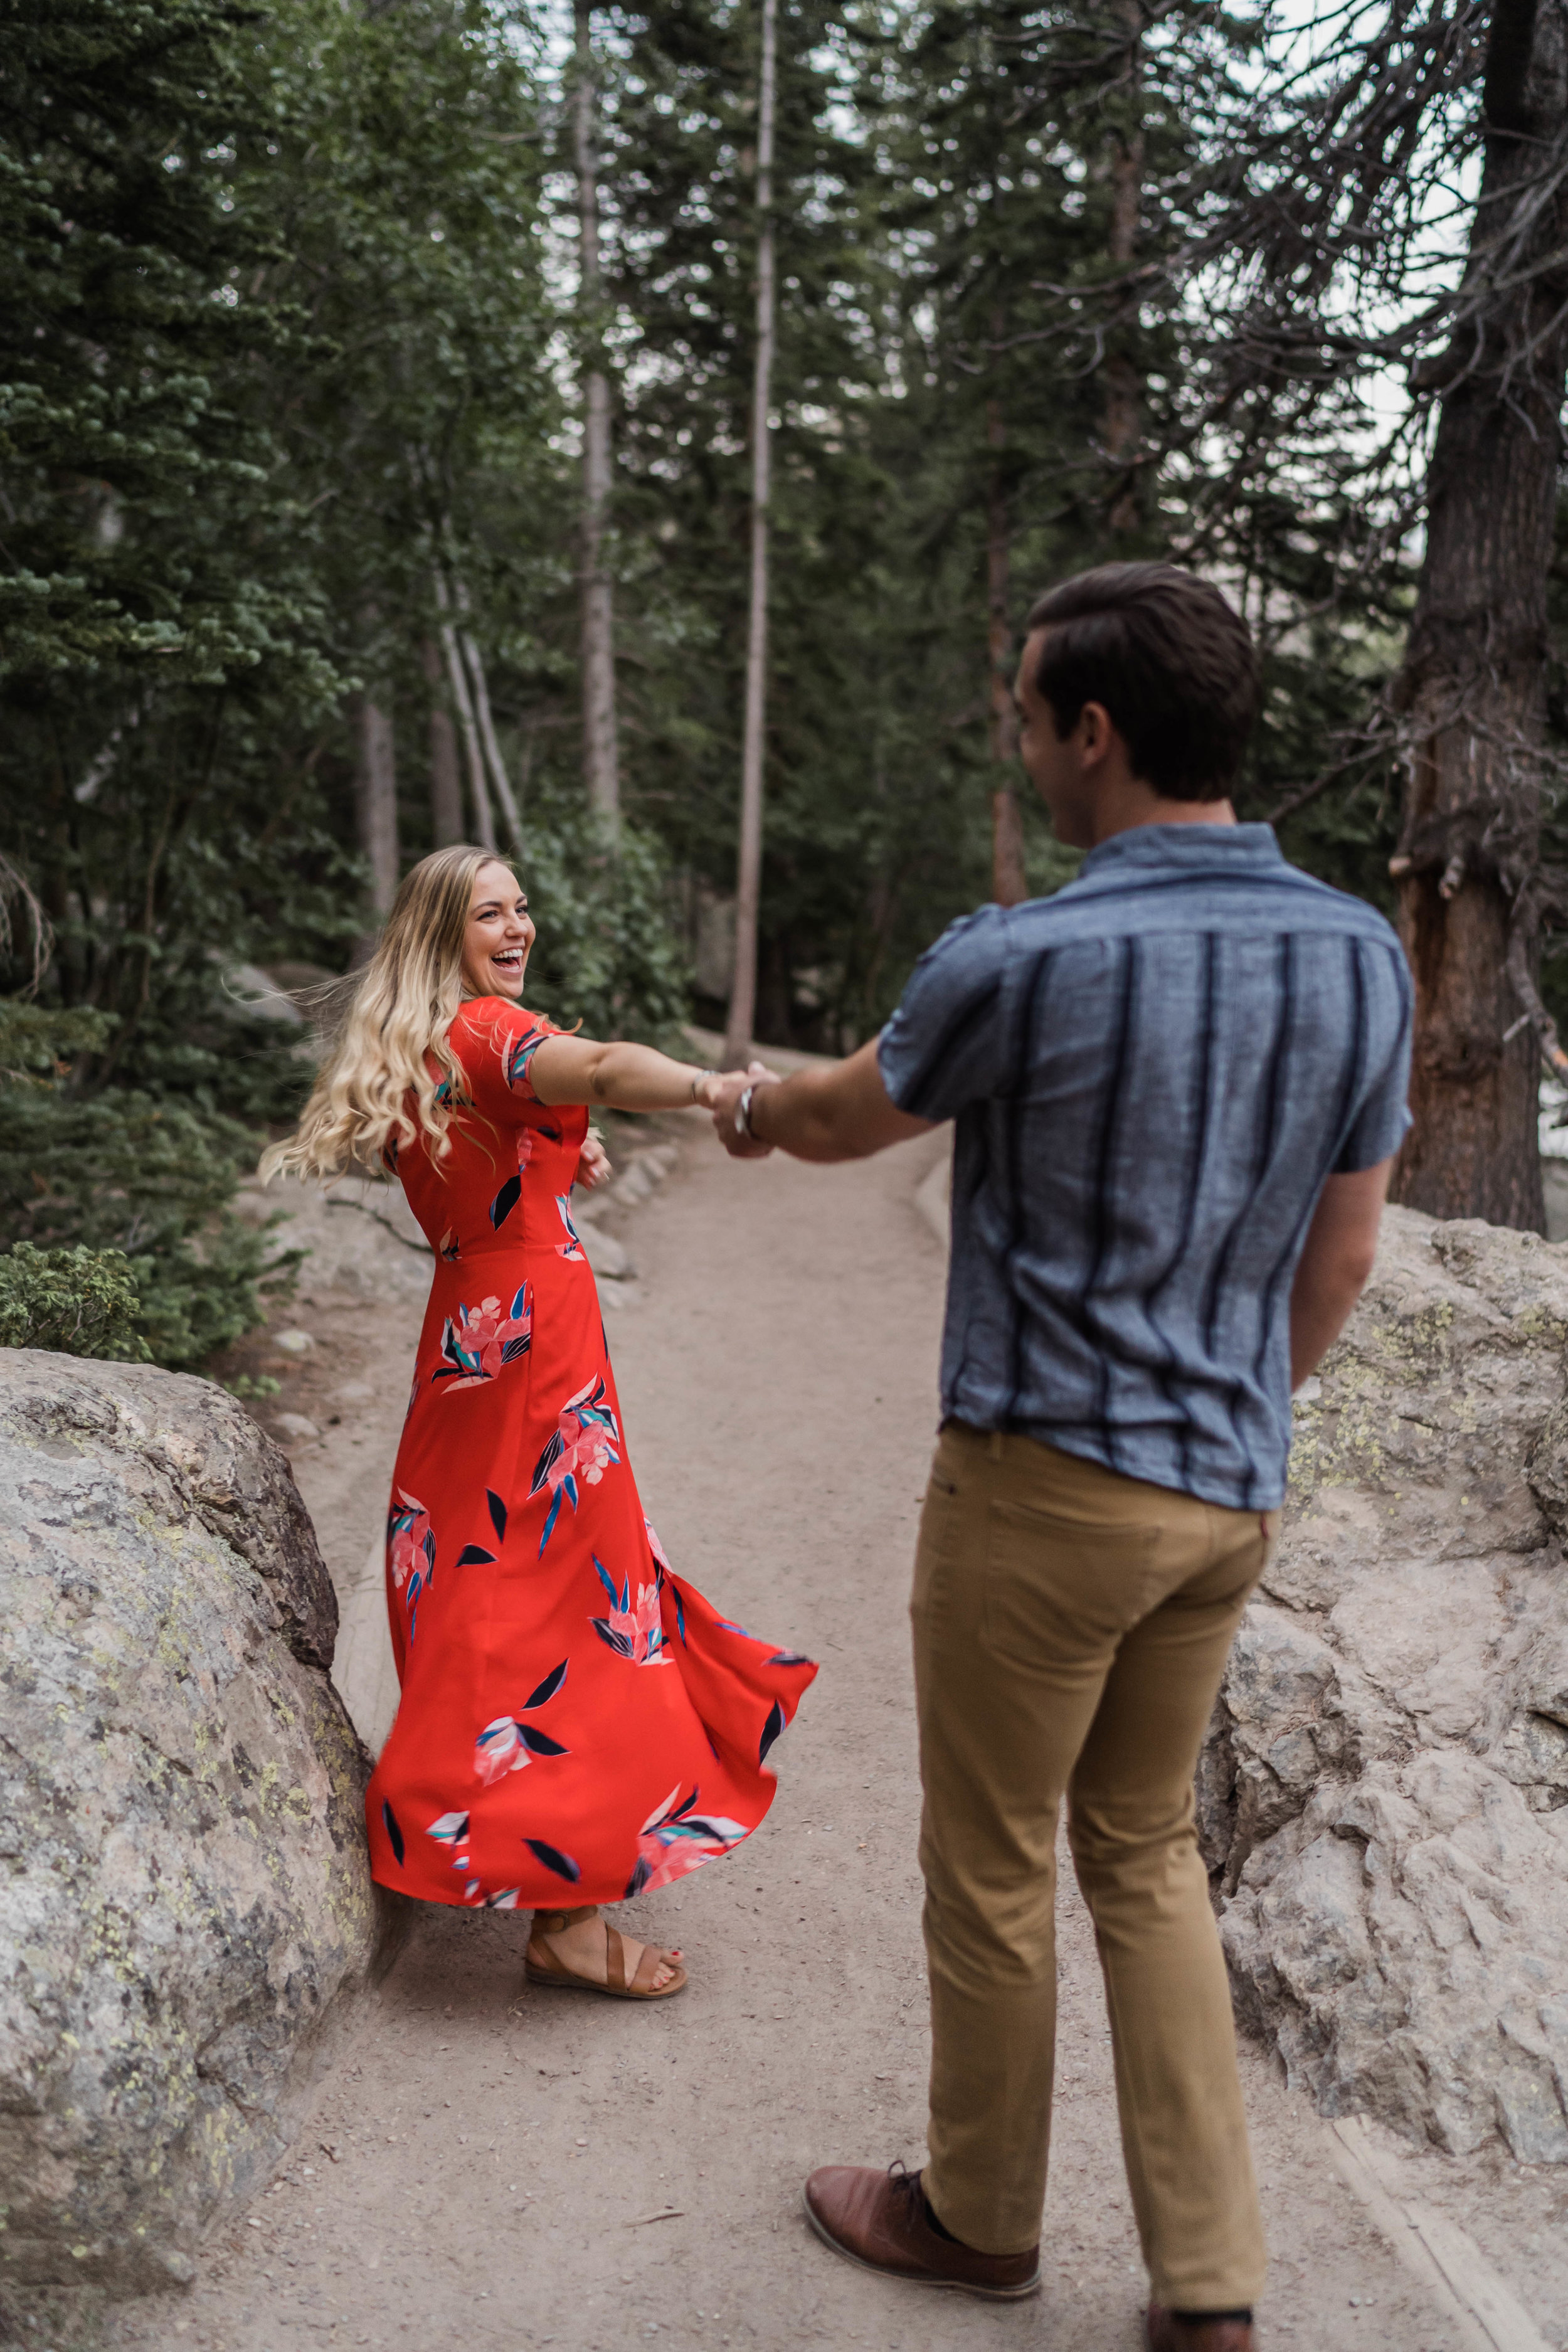 engagement photos in rocky mountain national park RMNP at bear lake -DSD07154.jpg